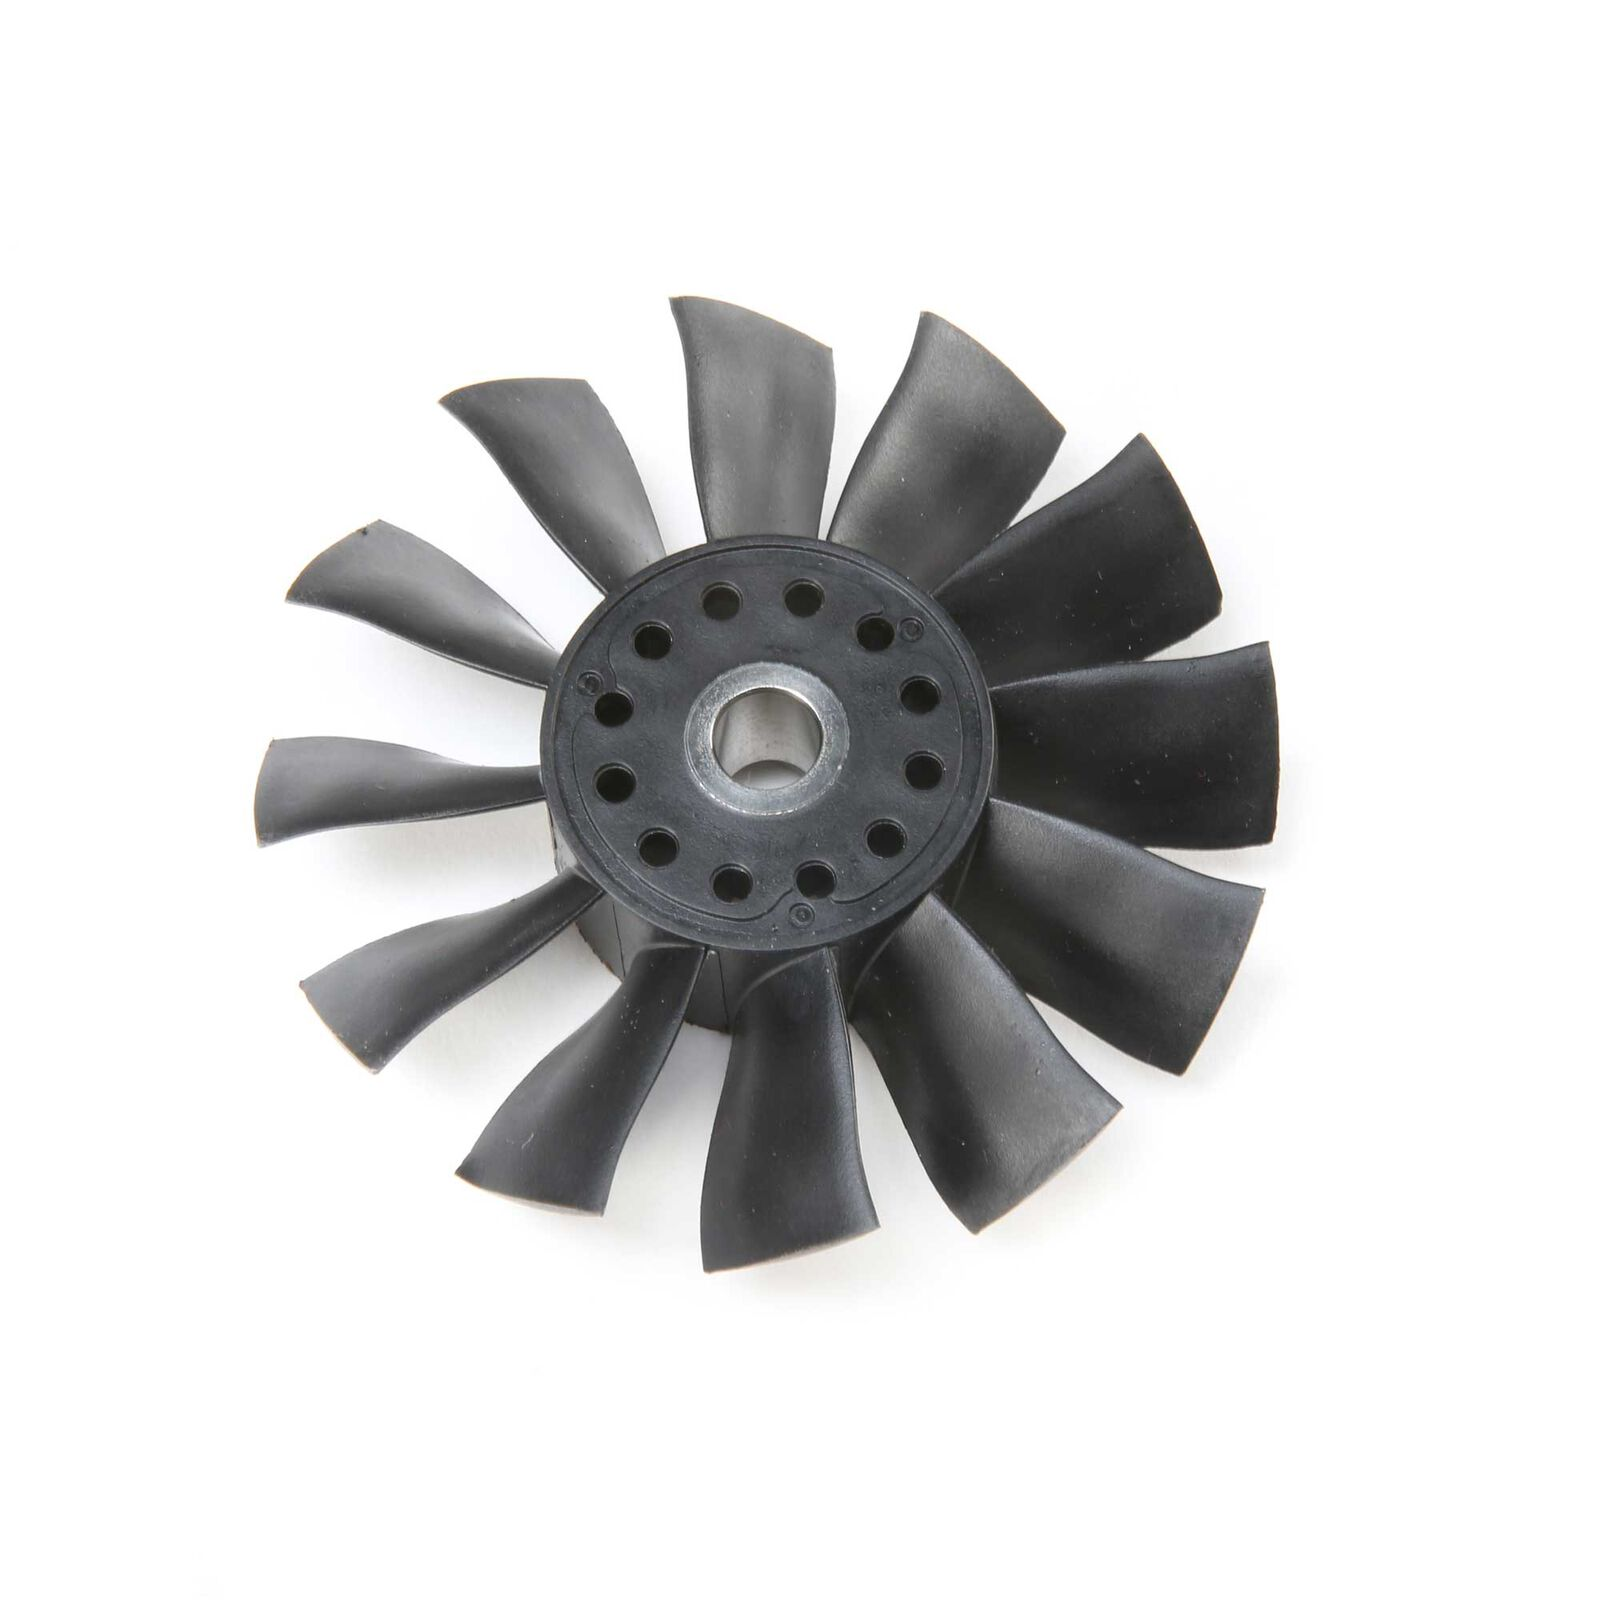 Ducted Fan Rotor: 80mm 12 Blade V2